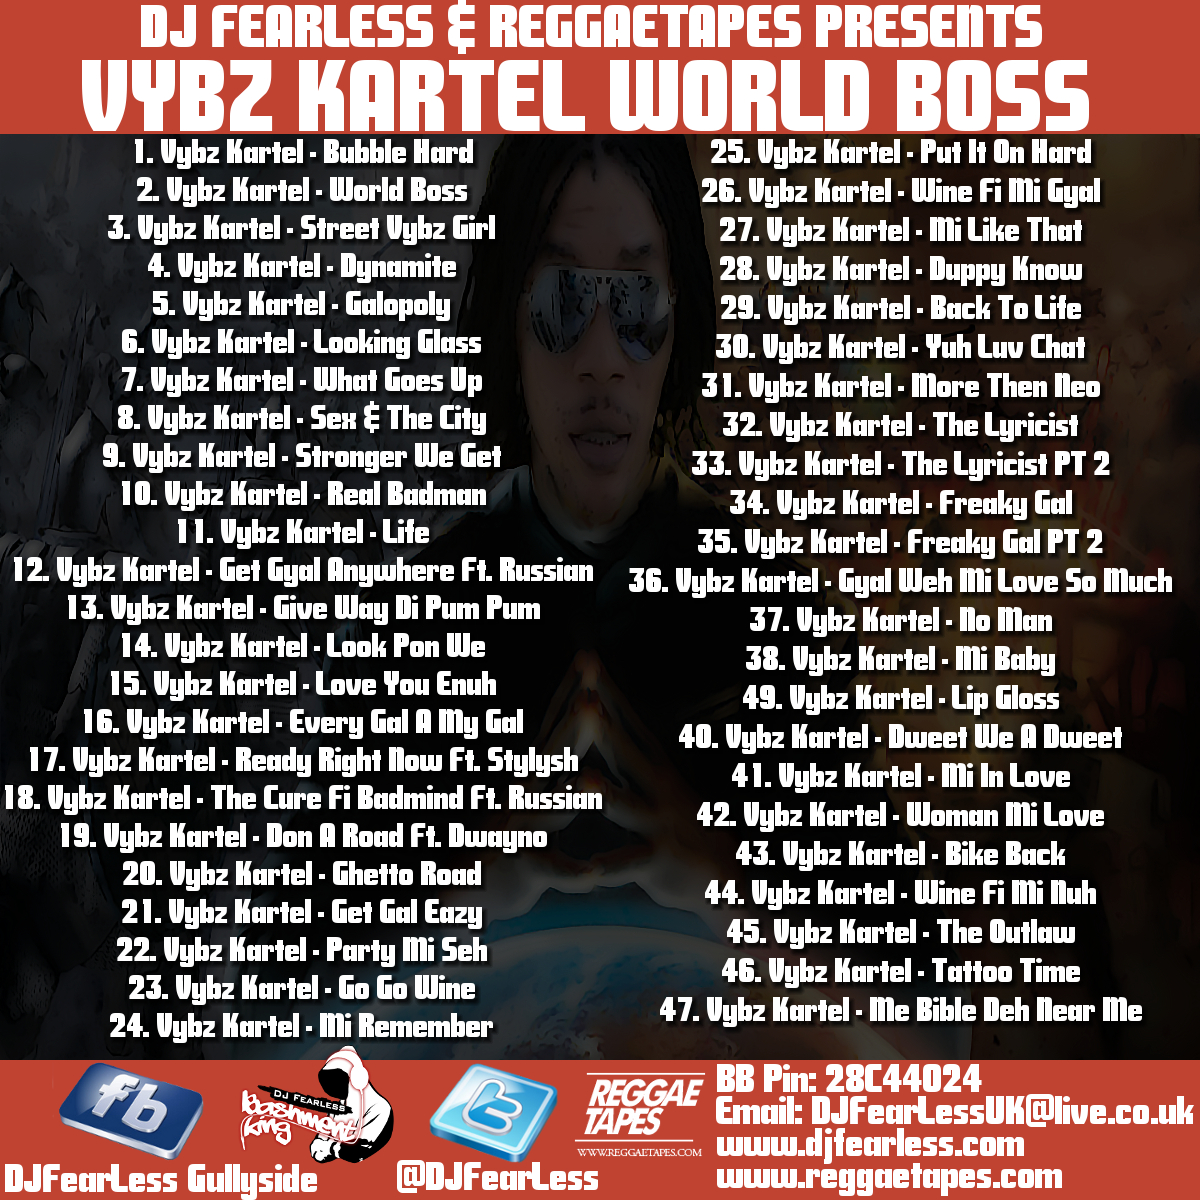 kartel+world+boss+BACK.JPG